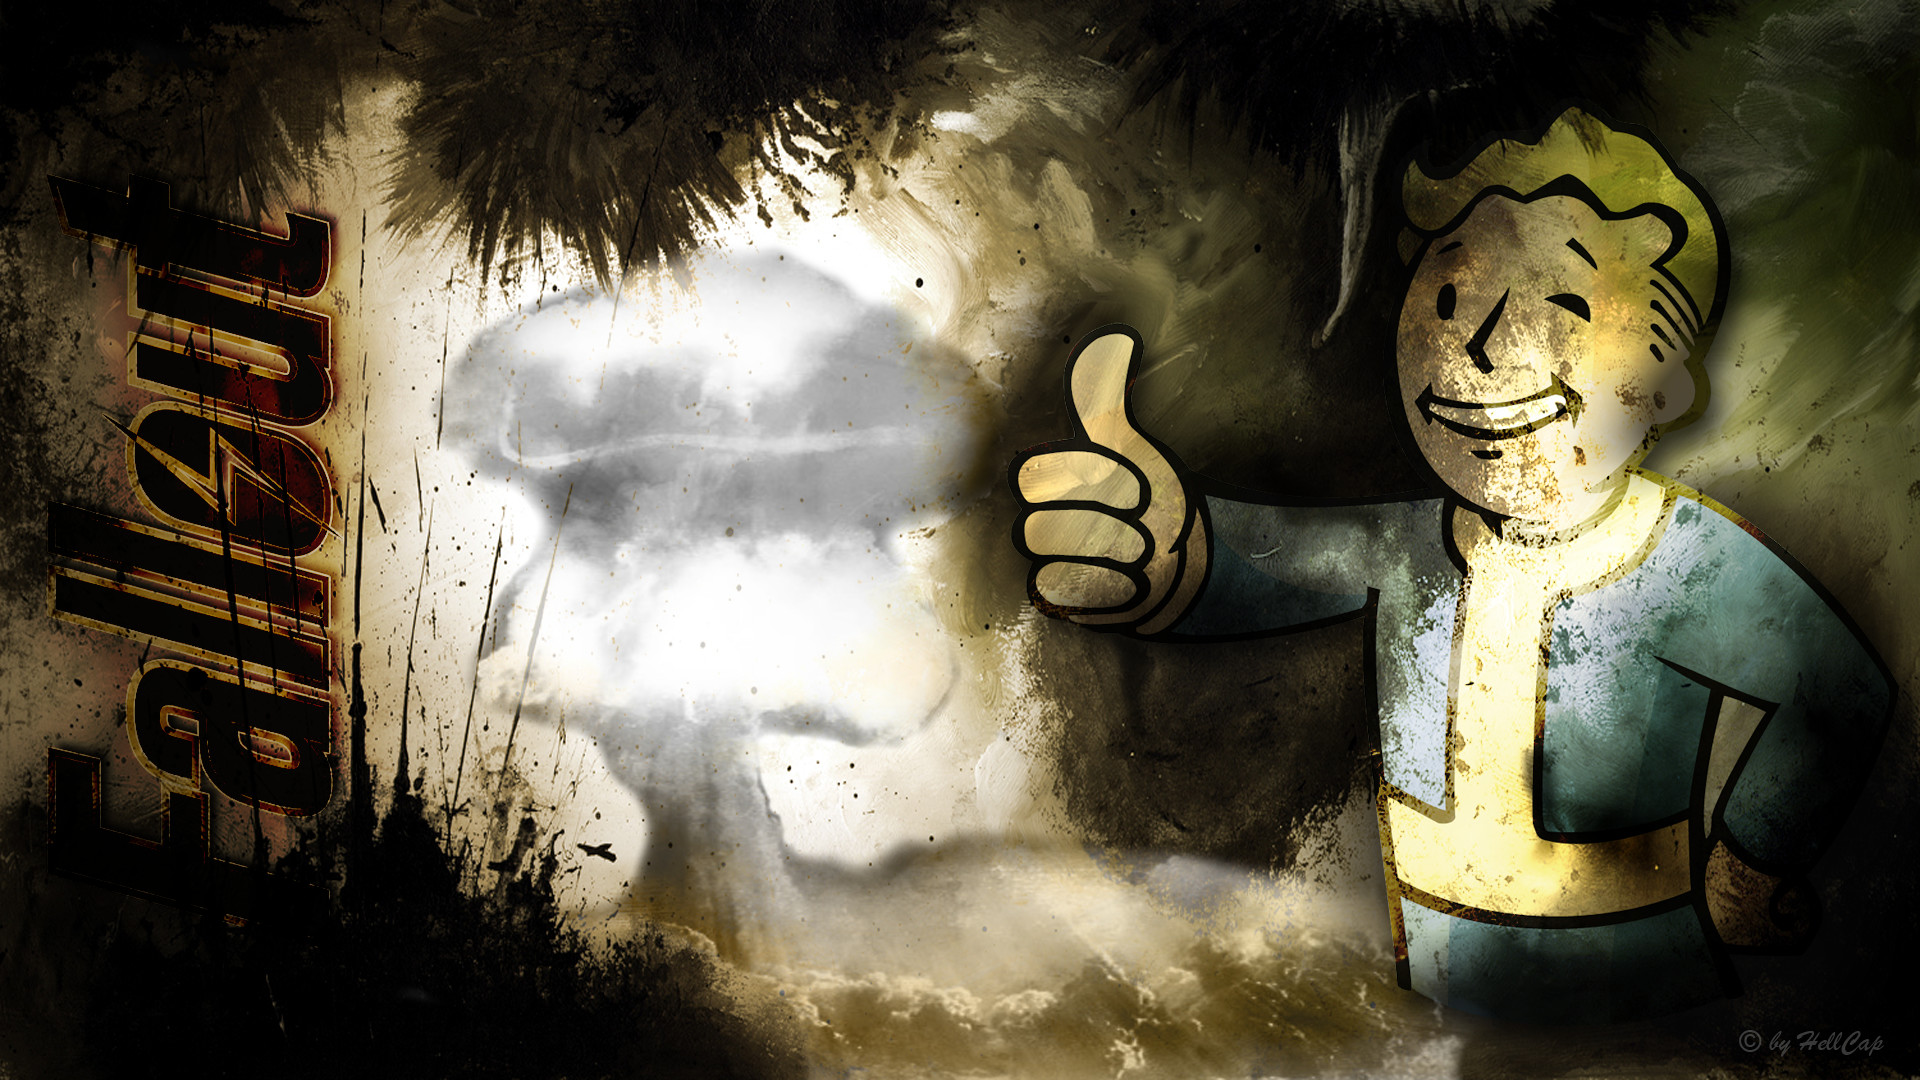 1920x1080 fallout vault boy wallpaper by netbase fan art wallpaper games 2011 .